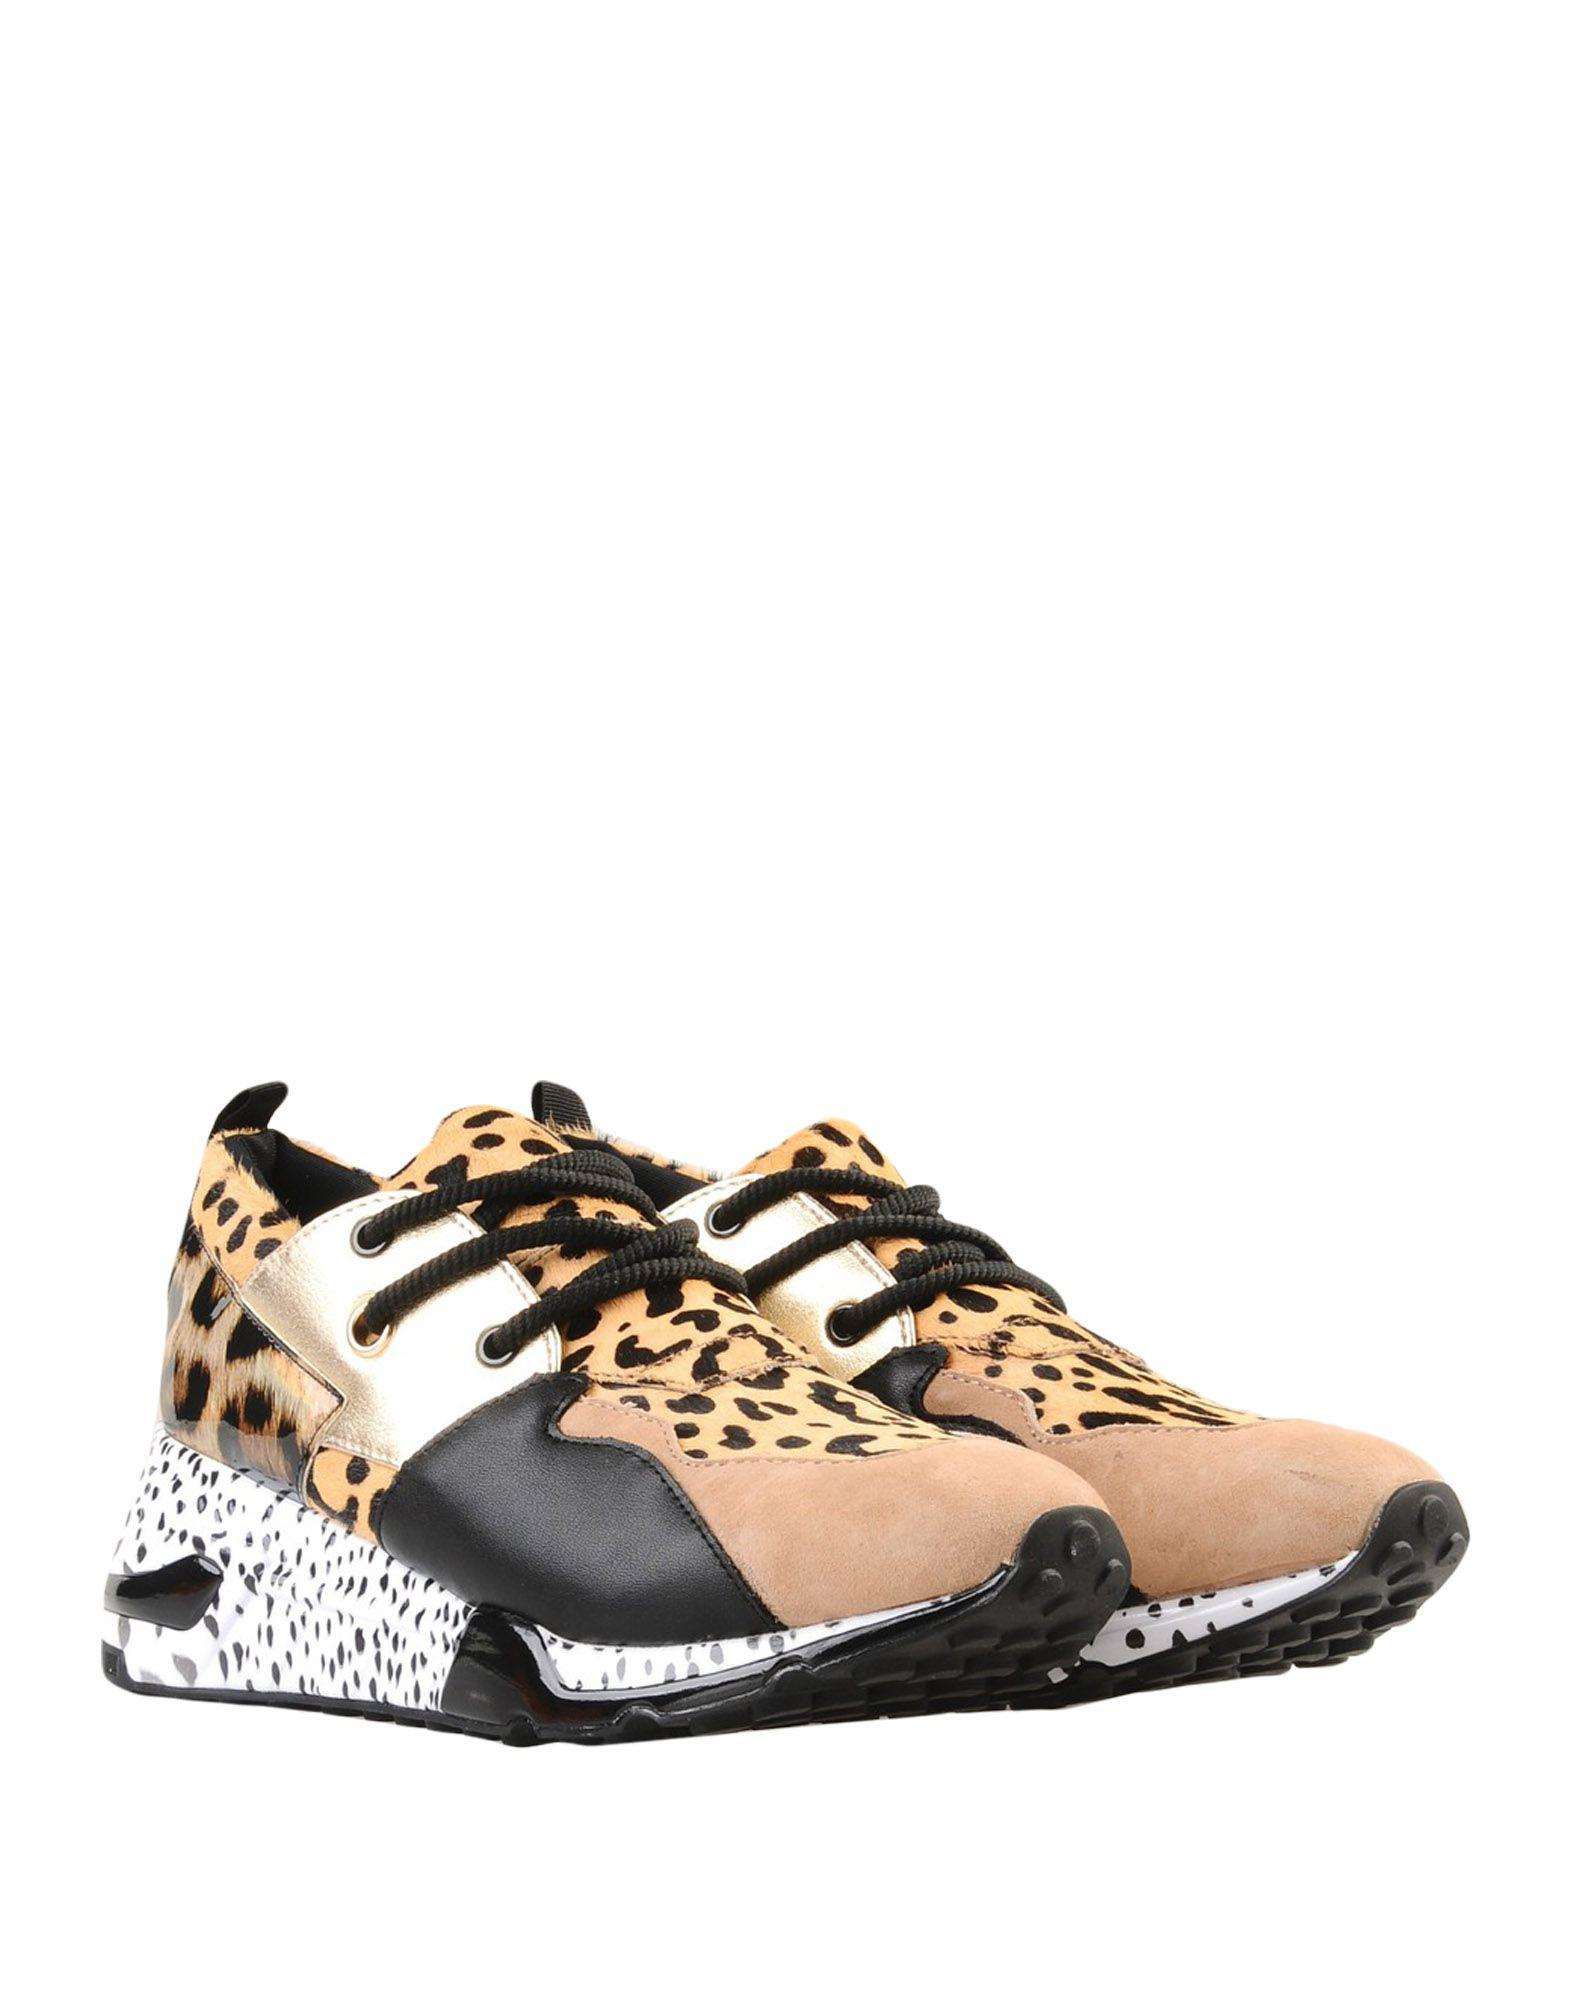 Steve Madden Low-tops & Sneakers - Save 12%